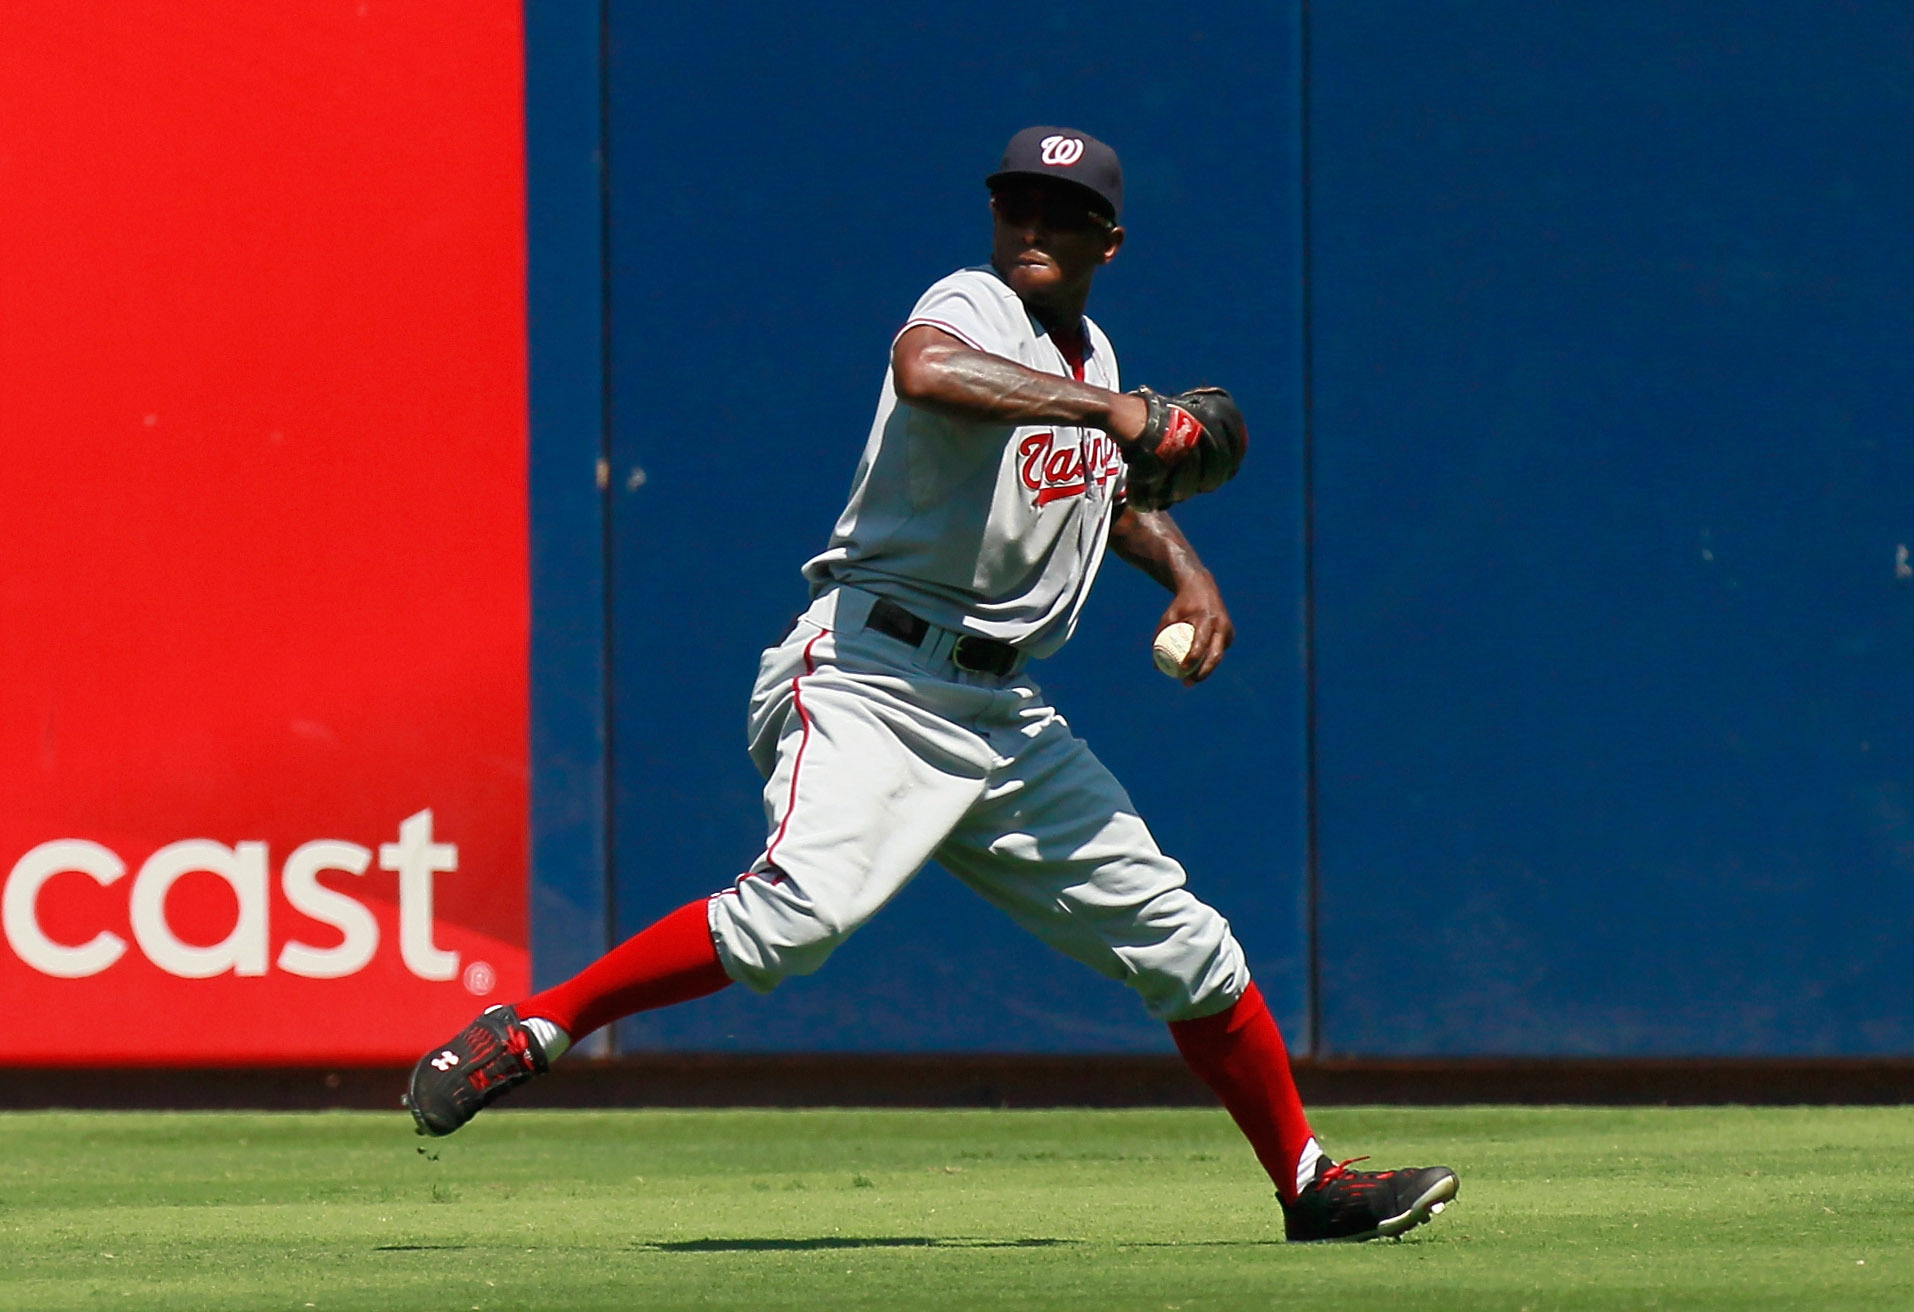 ATLANTA - SEPTEMBER 15:  Nyjer Morgan #1 of the Washington Nationals throws the ball into the infield against the Atlanta Braves at Turner Field on September 15, 2010 in Atlanta, Georgia.  (Photo by Kevin C. Cox/Getty Images)